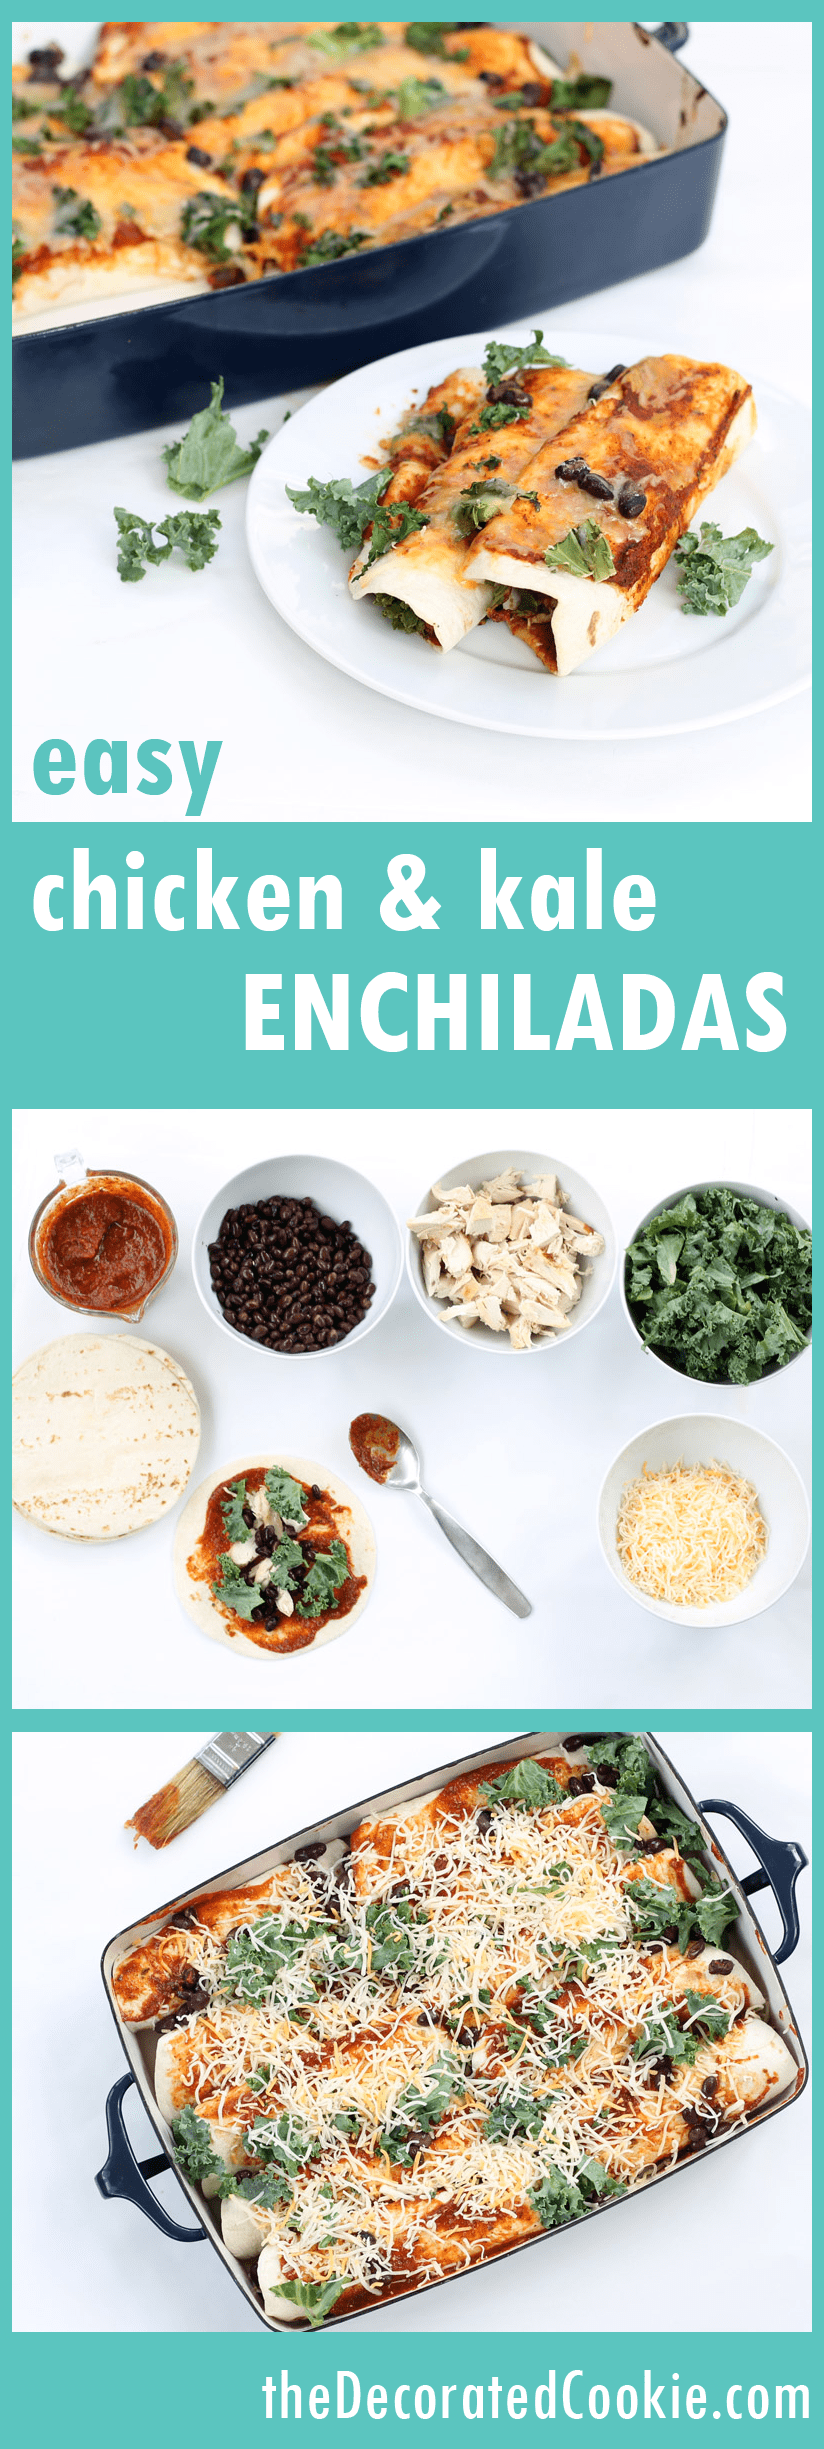 how to make enchiladas: easy chicken and kale enchiladas with black beans, made with 1-minute enchilada sauce